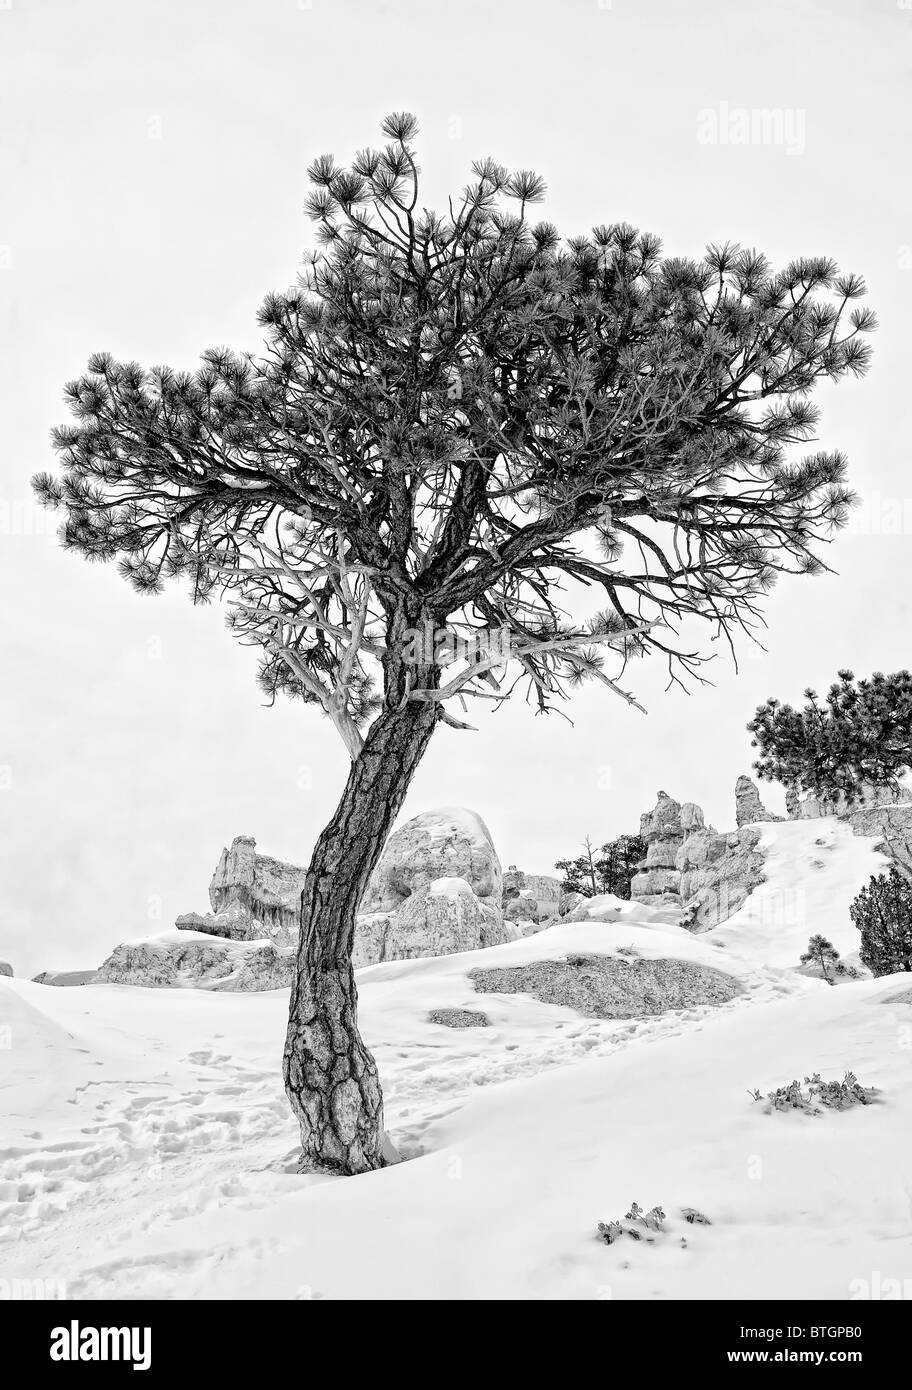 Pine tree in winter snow at Bryce Canyon Stock Photo